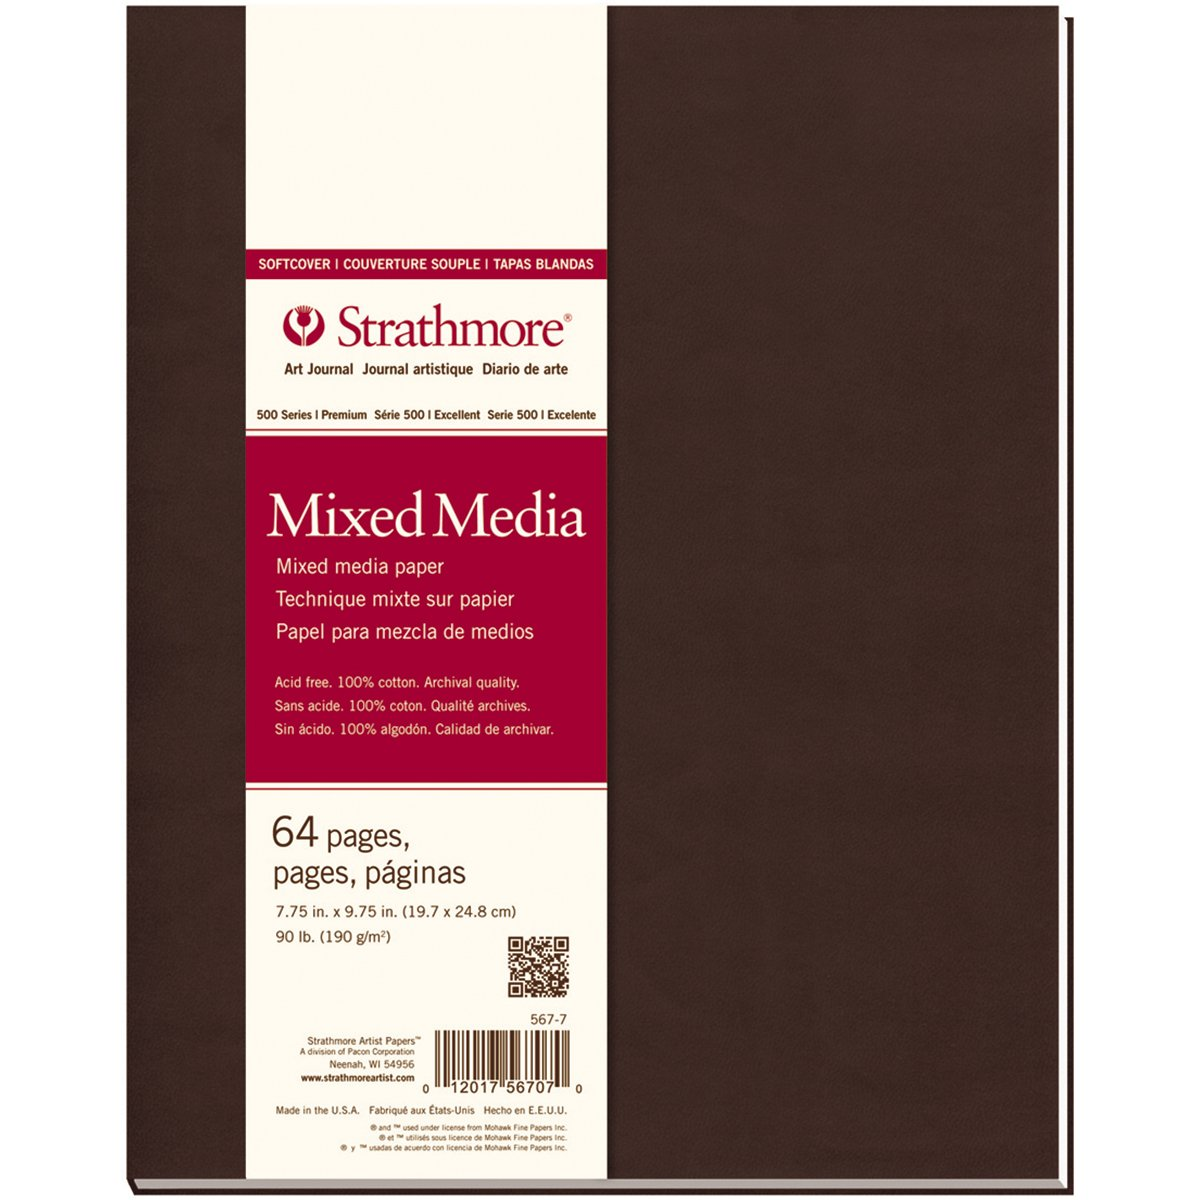 Pro-Art Strathmore Softcover Mixed Media Journal, 7.75 by 9.75-Inch, 64 Pages